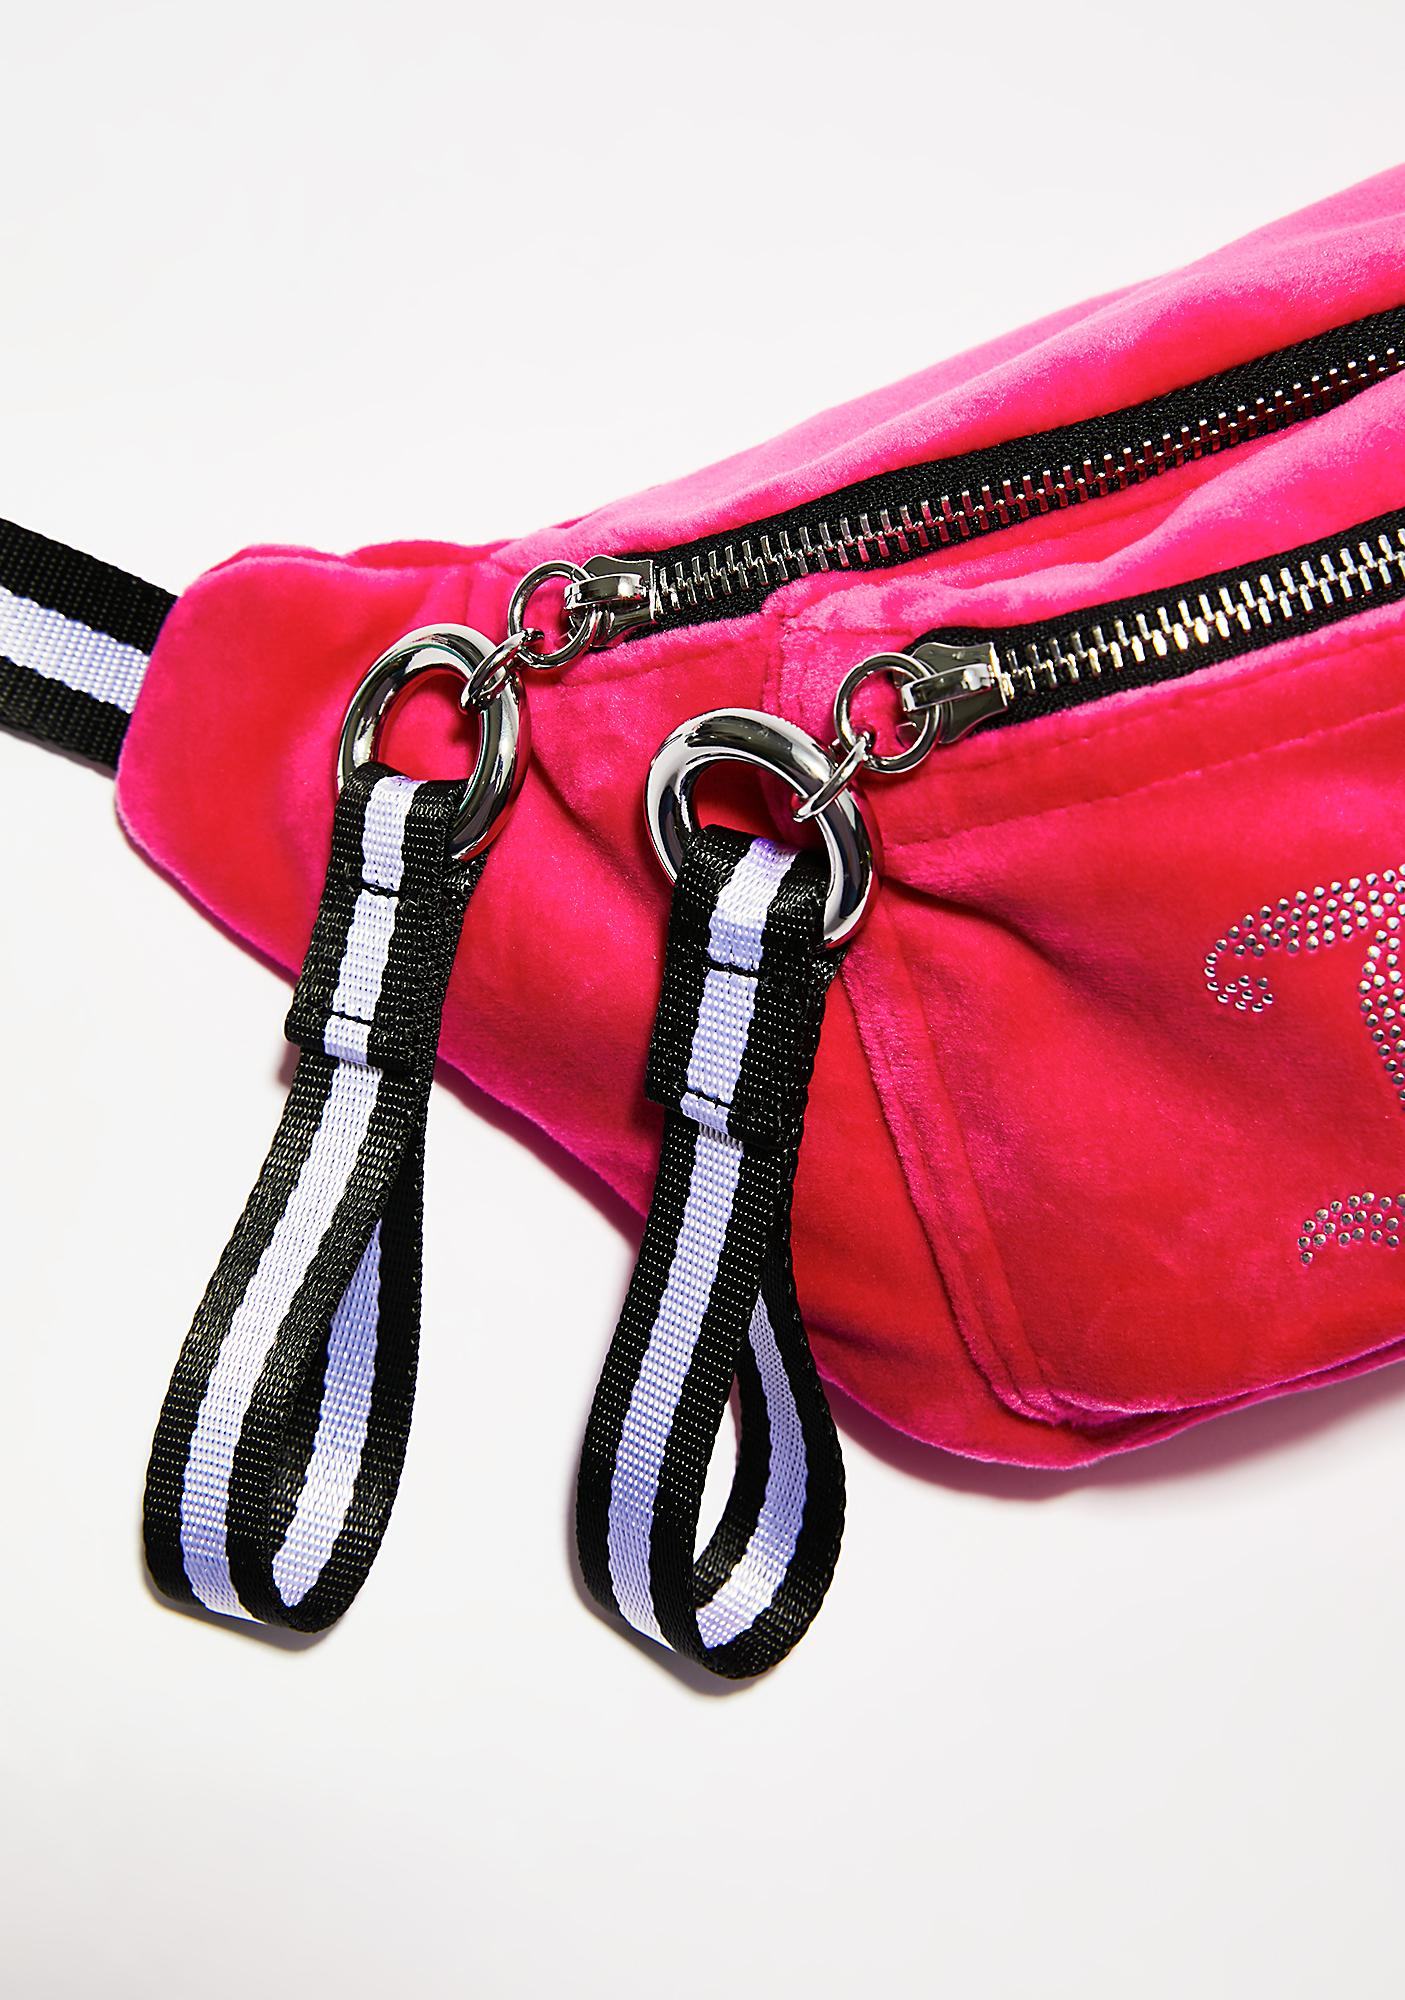 JUICY COUTURE Juicy Velour Fanny Pack